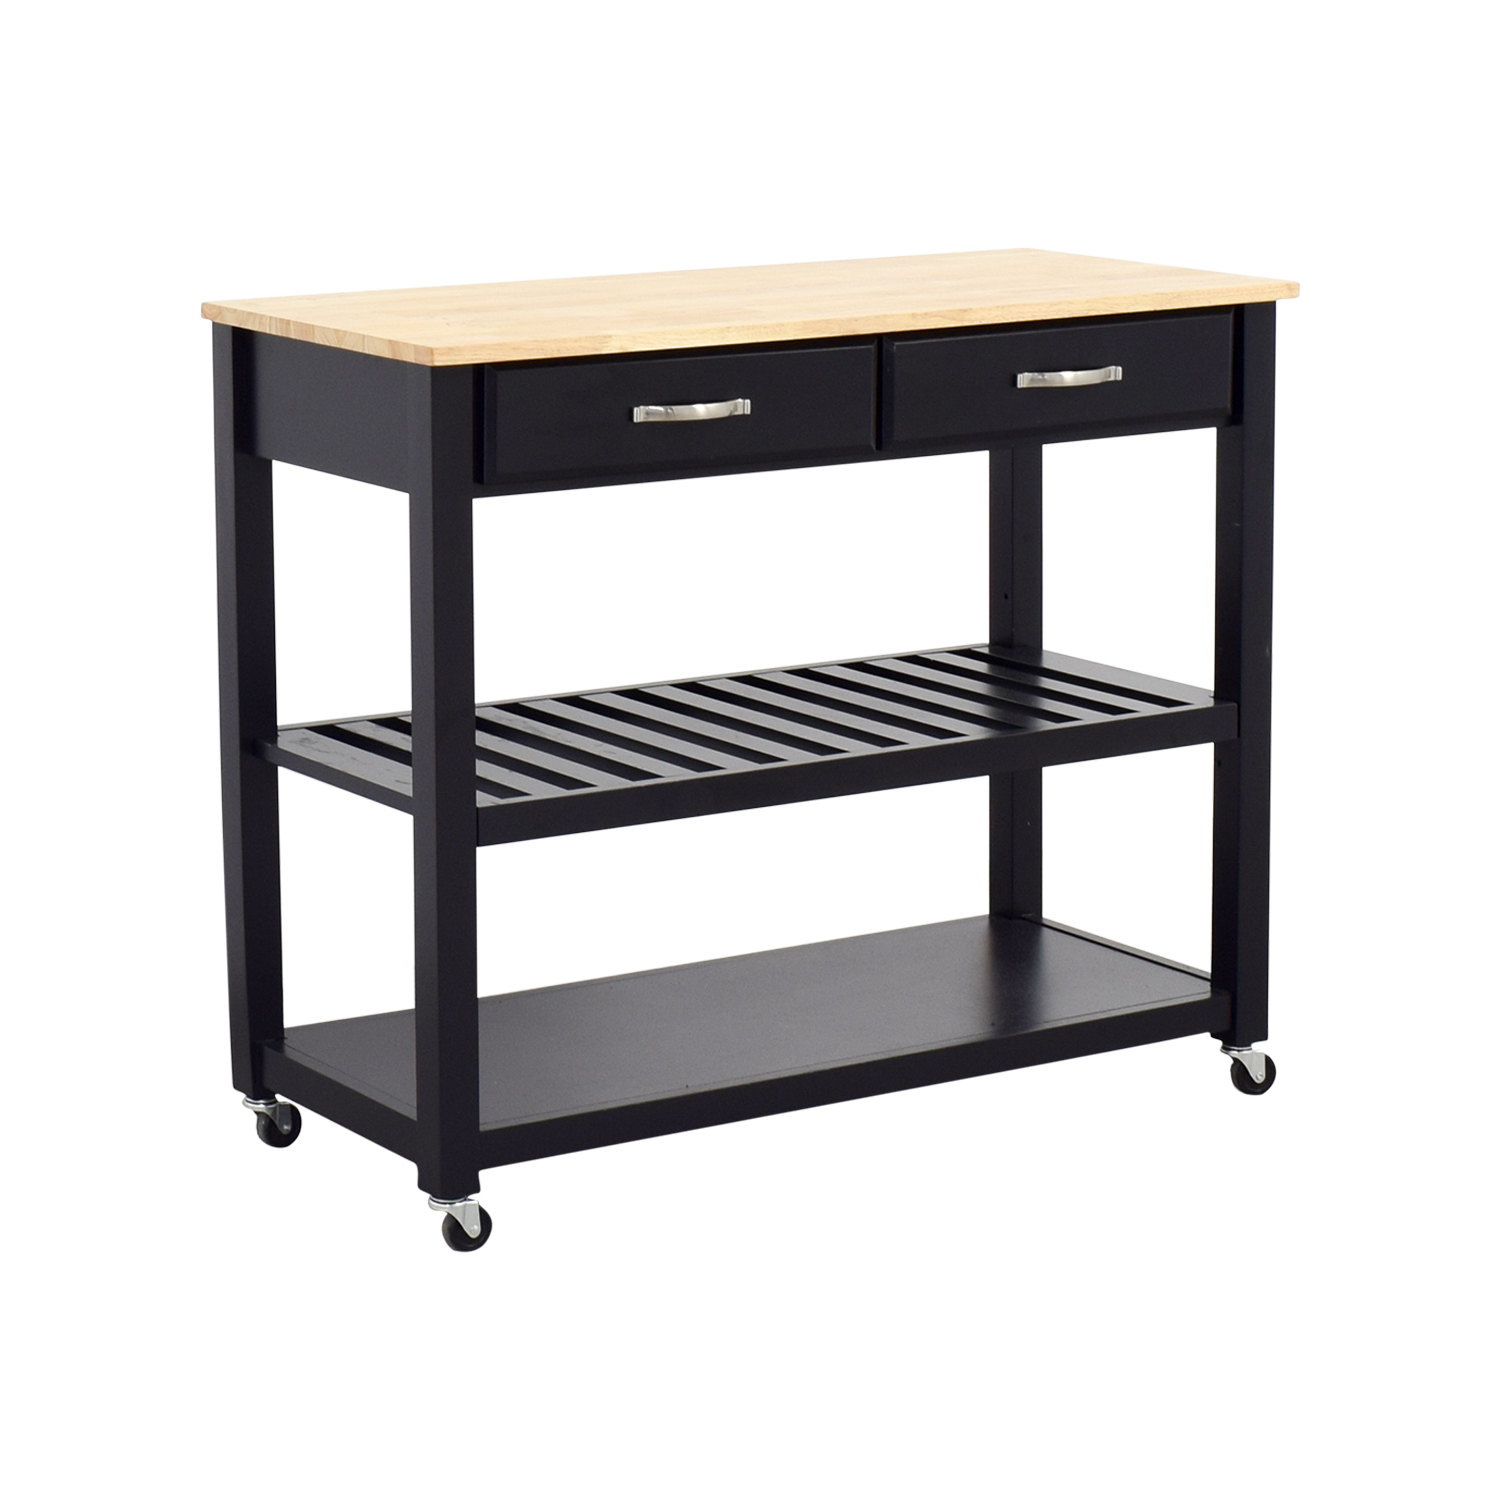 51 off crosley crosley kitchen cart cabinet tables